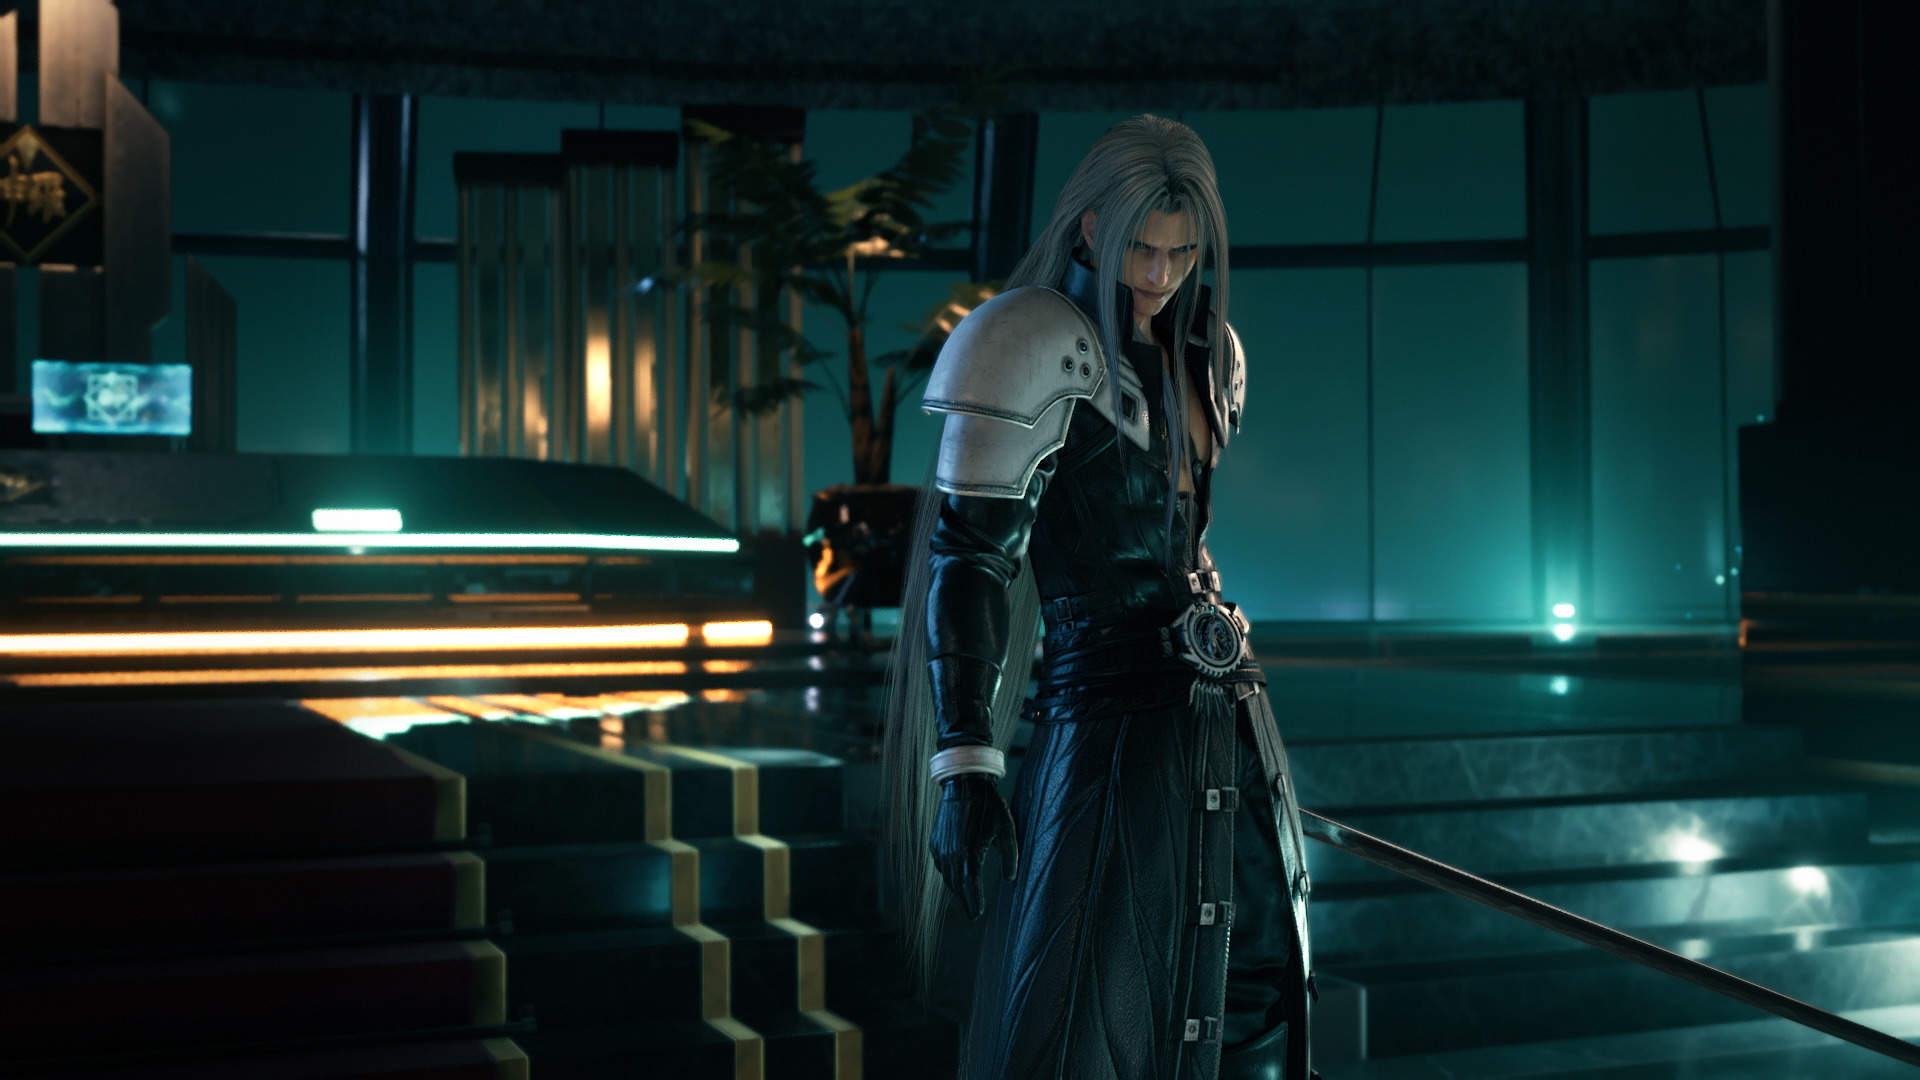 Sephiroth Wallpaper And Avatars Added To The Official Site For